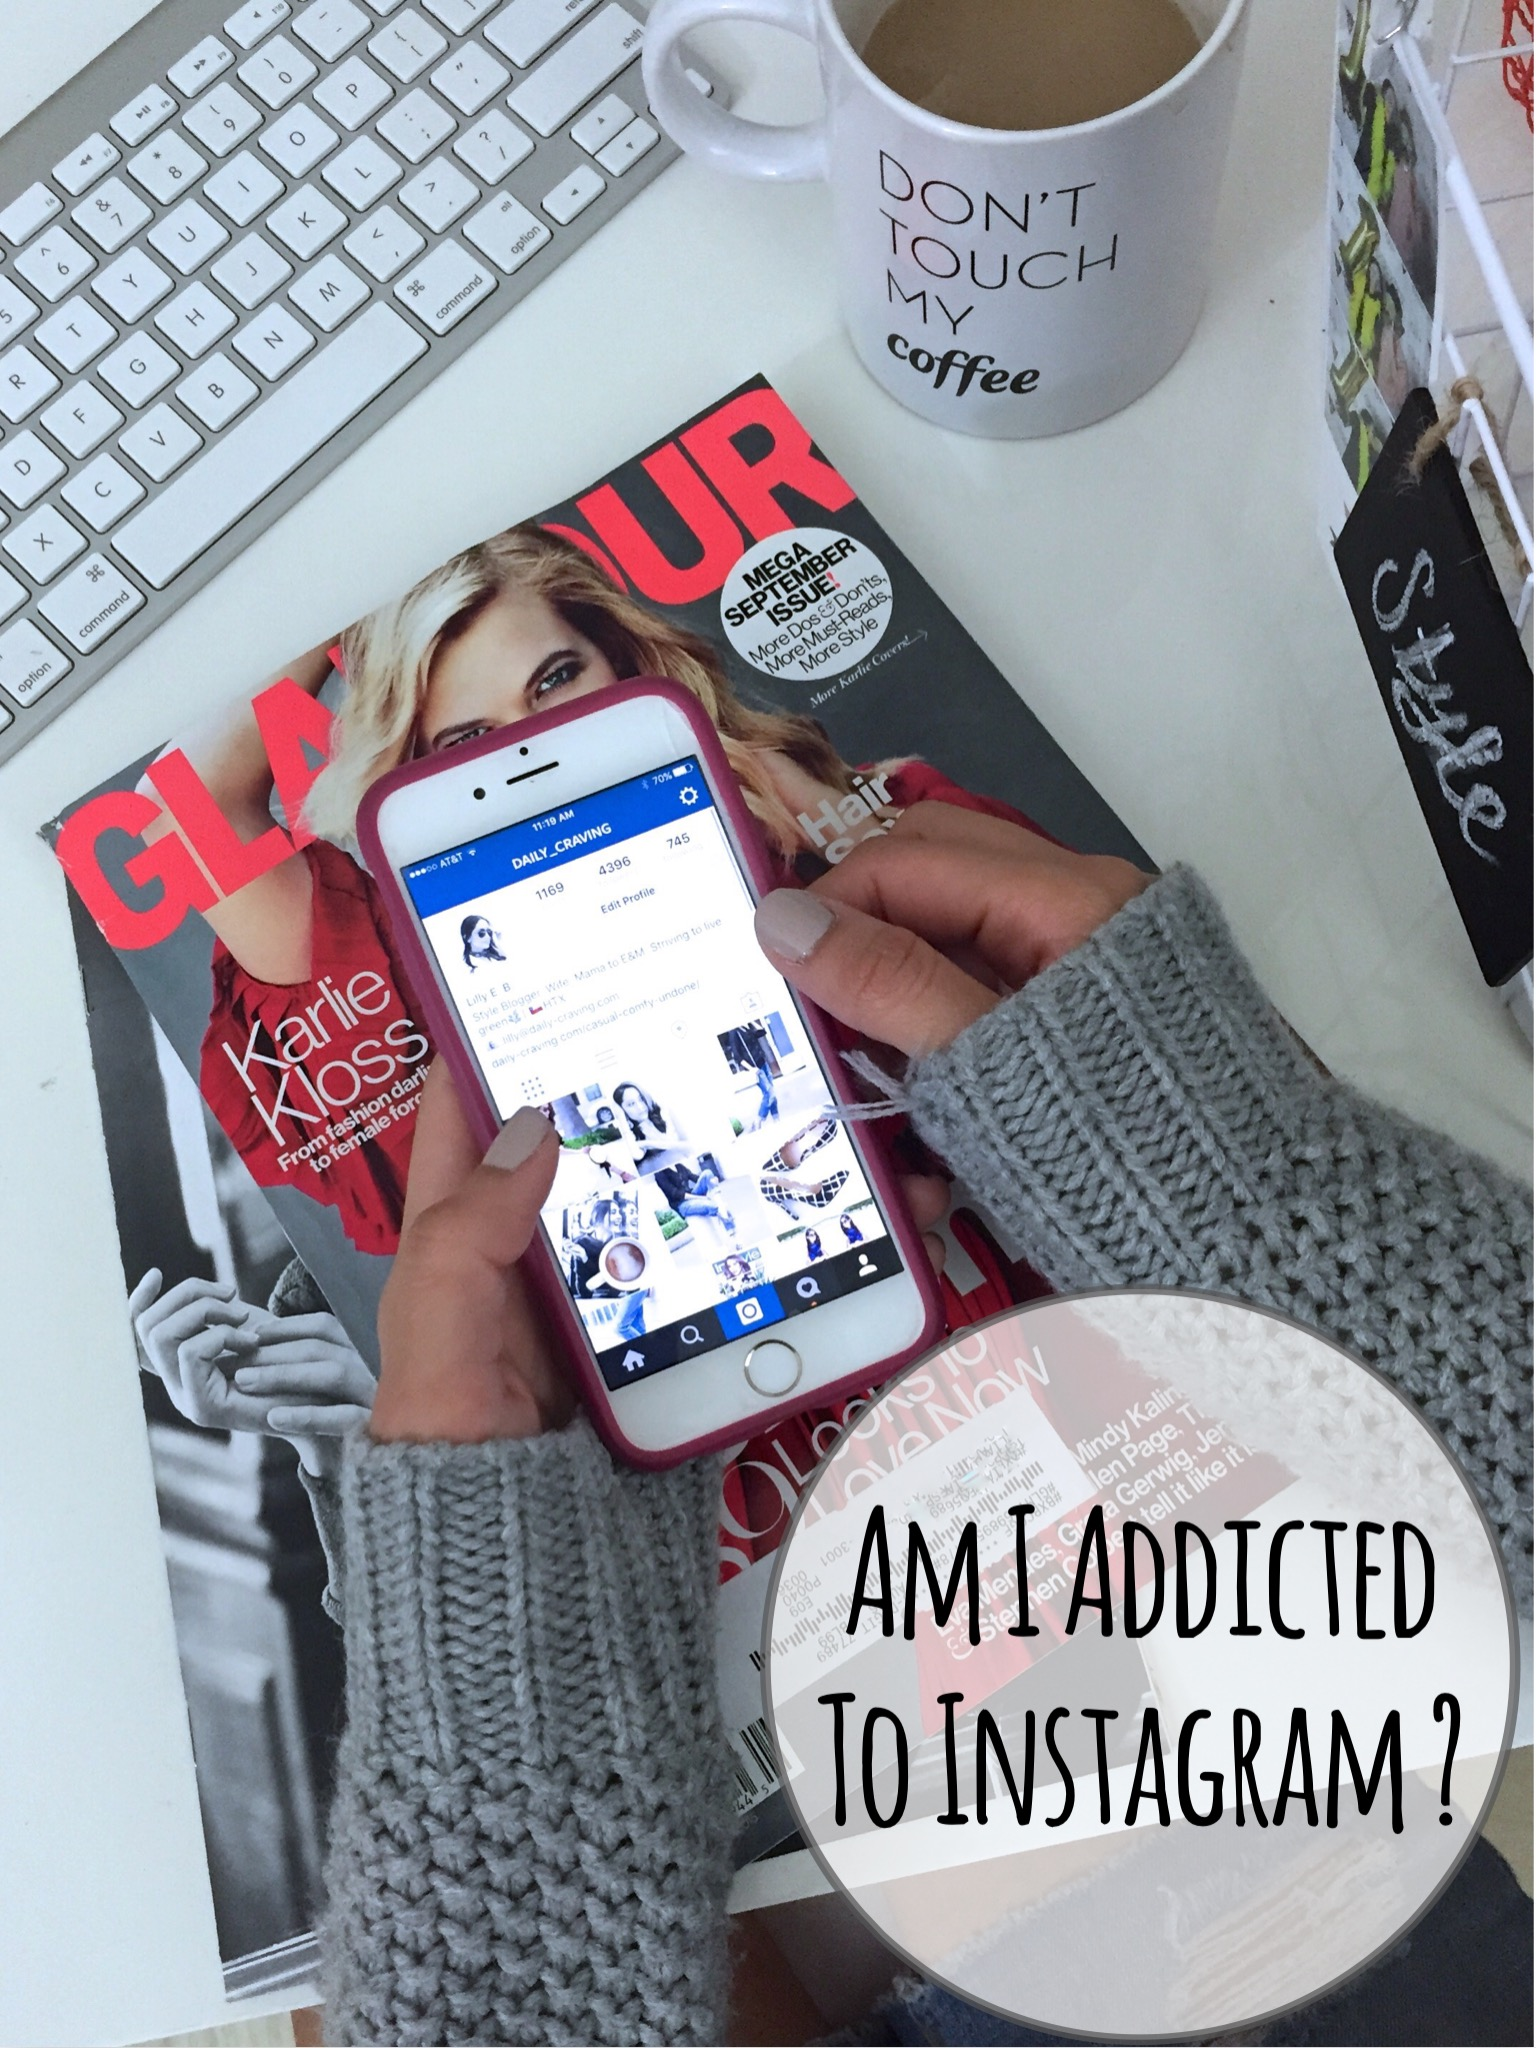 Am I Addicted To Instagram?